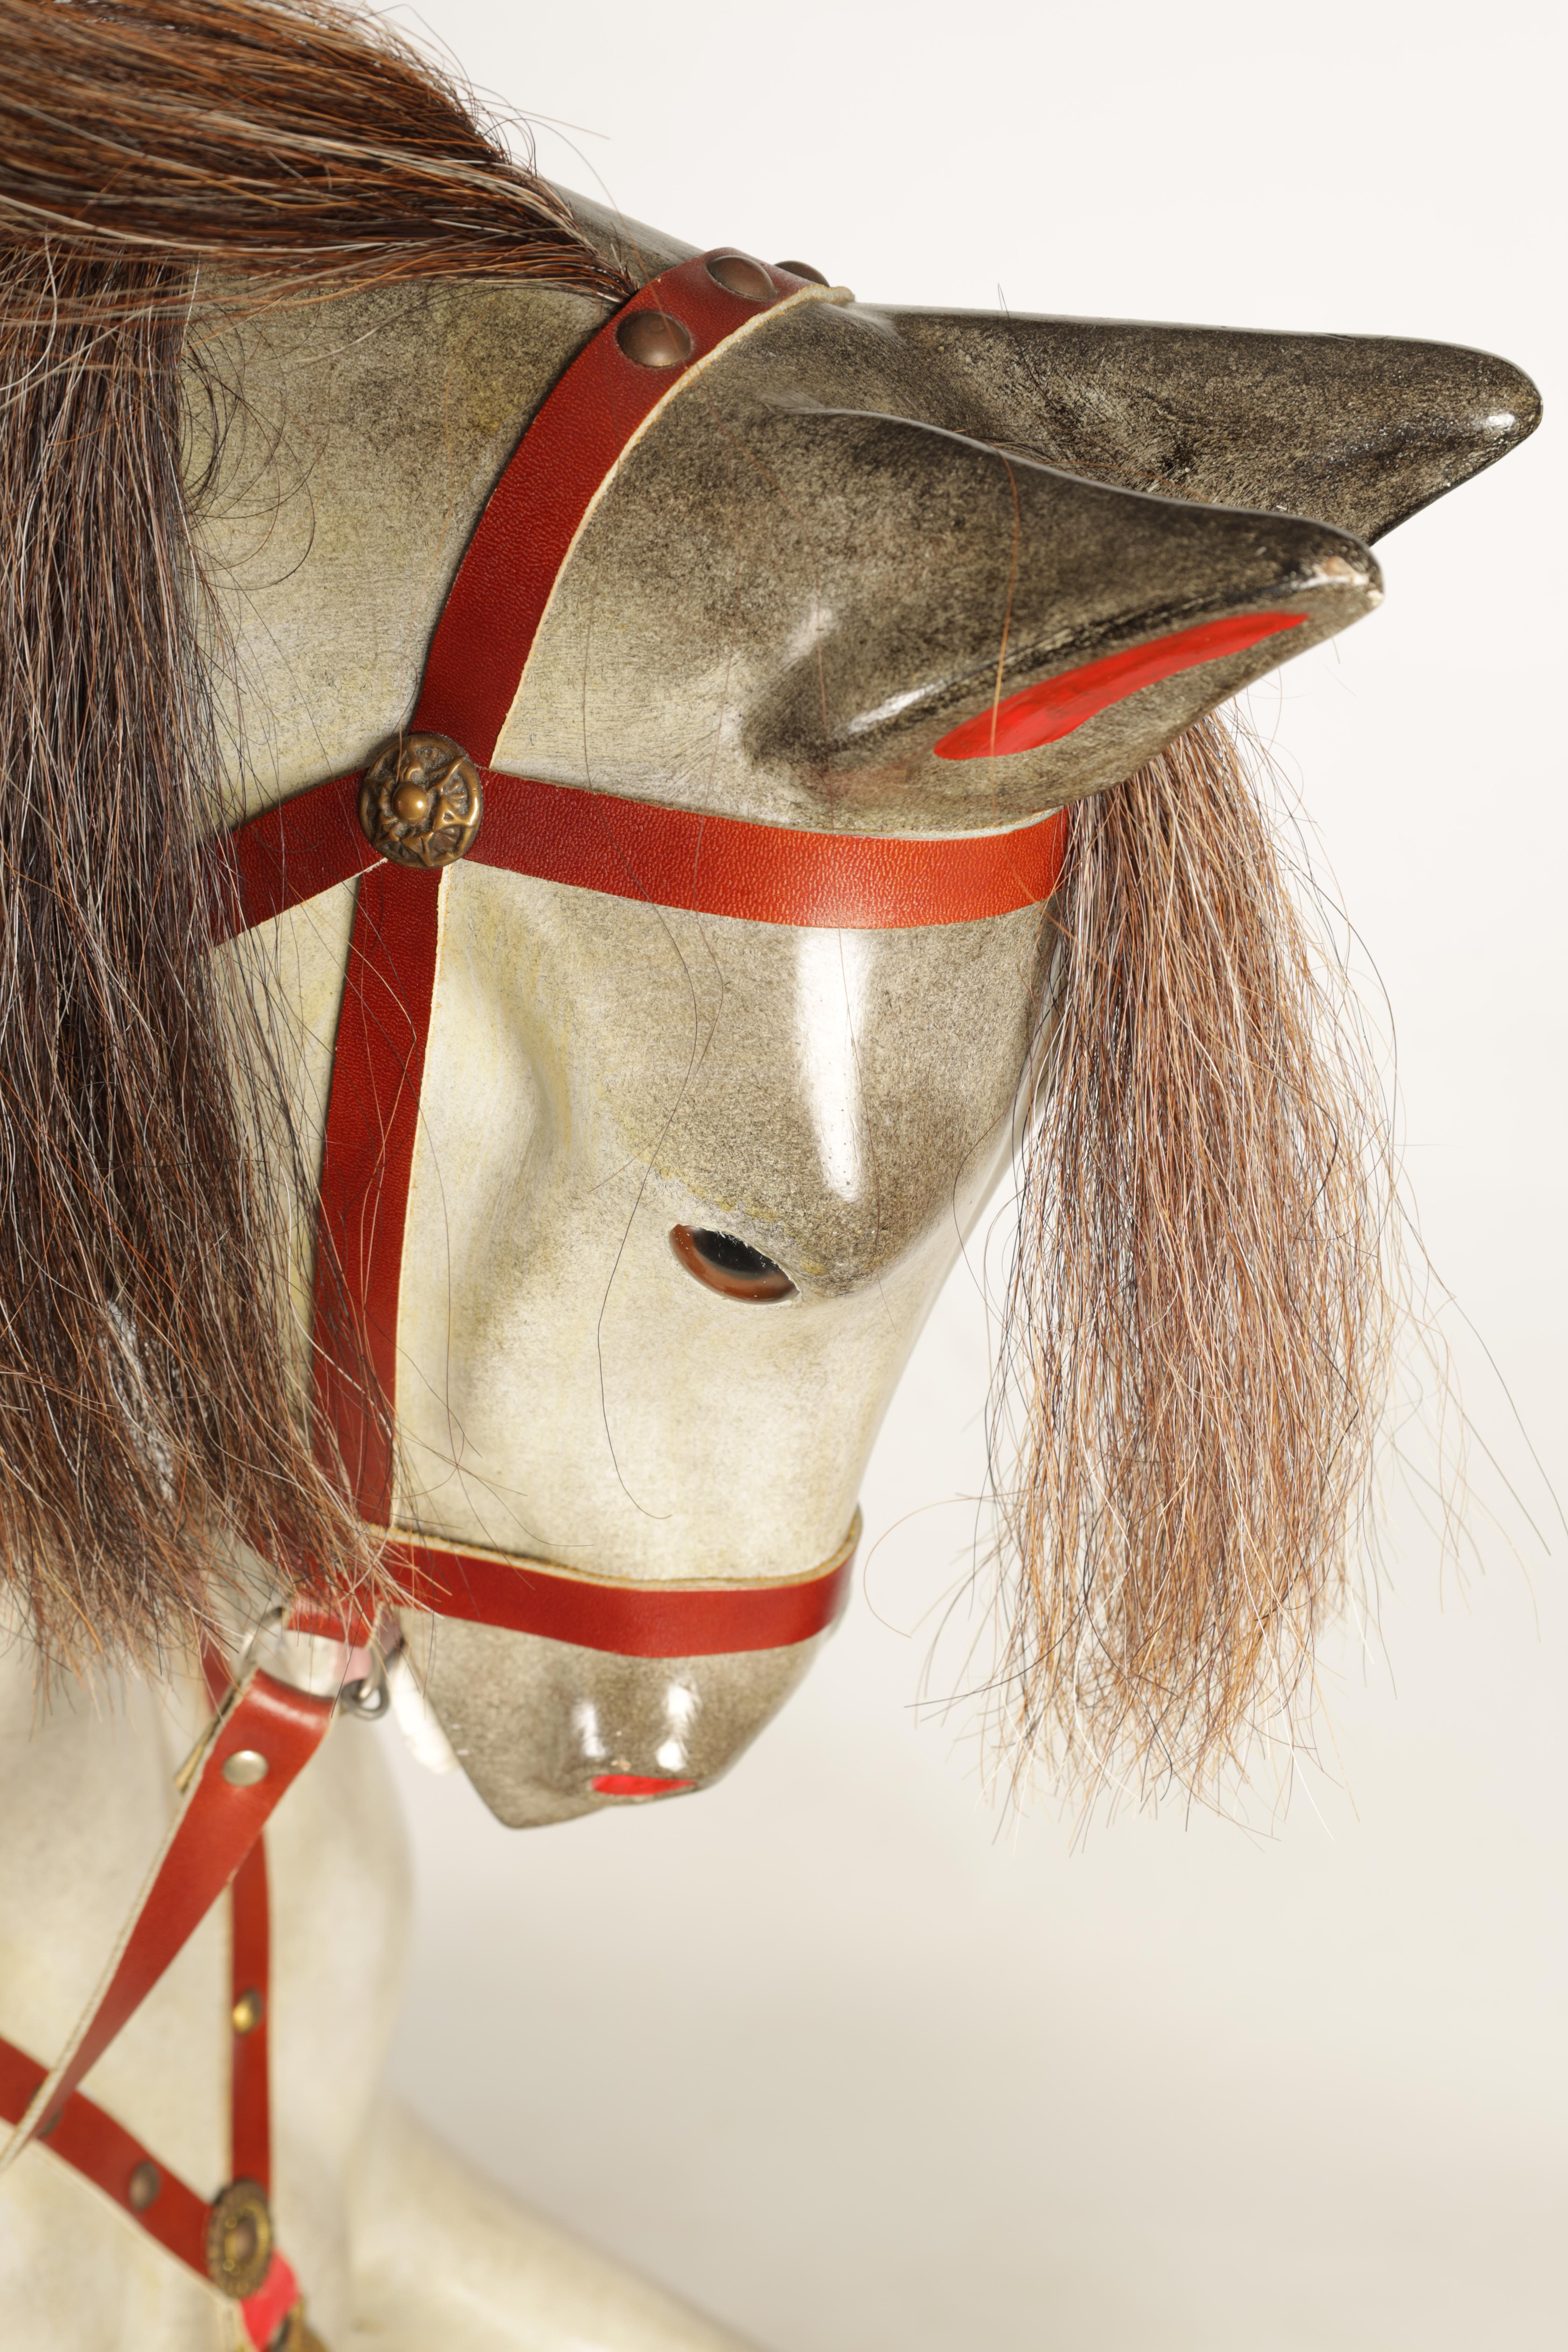 A LARGE 20TH CENTURY DAPPLE GREY PAINTED WOOD ROCKING HORSE with leather seat and bridle 157cm - Image 3 of 8